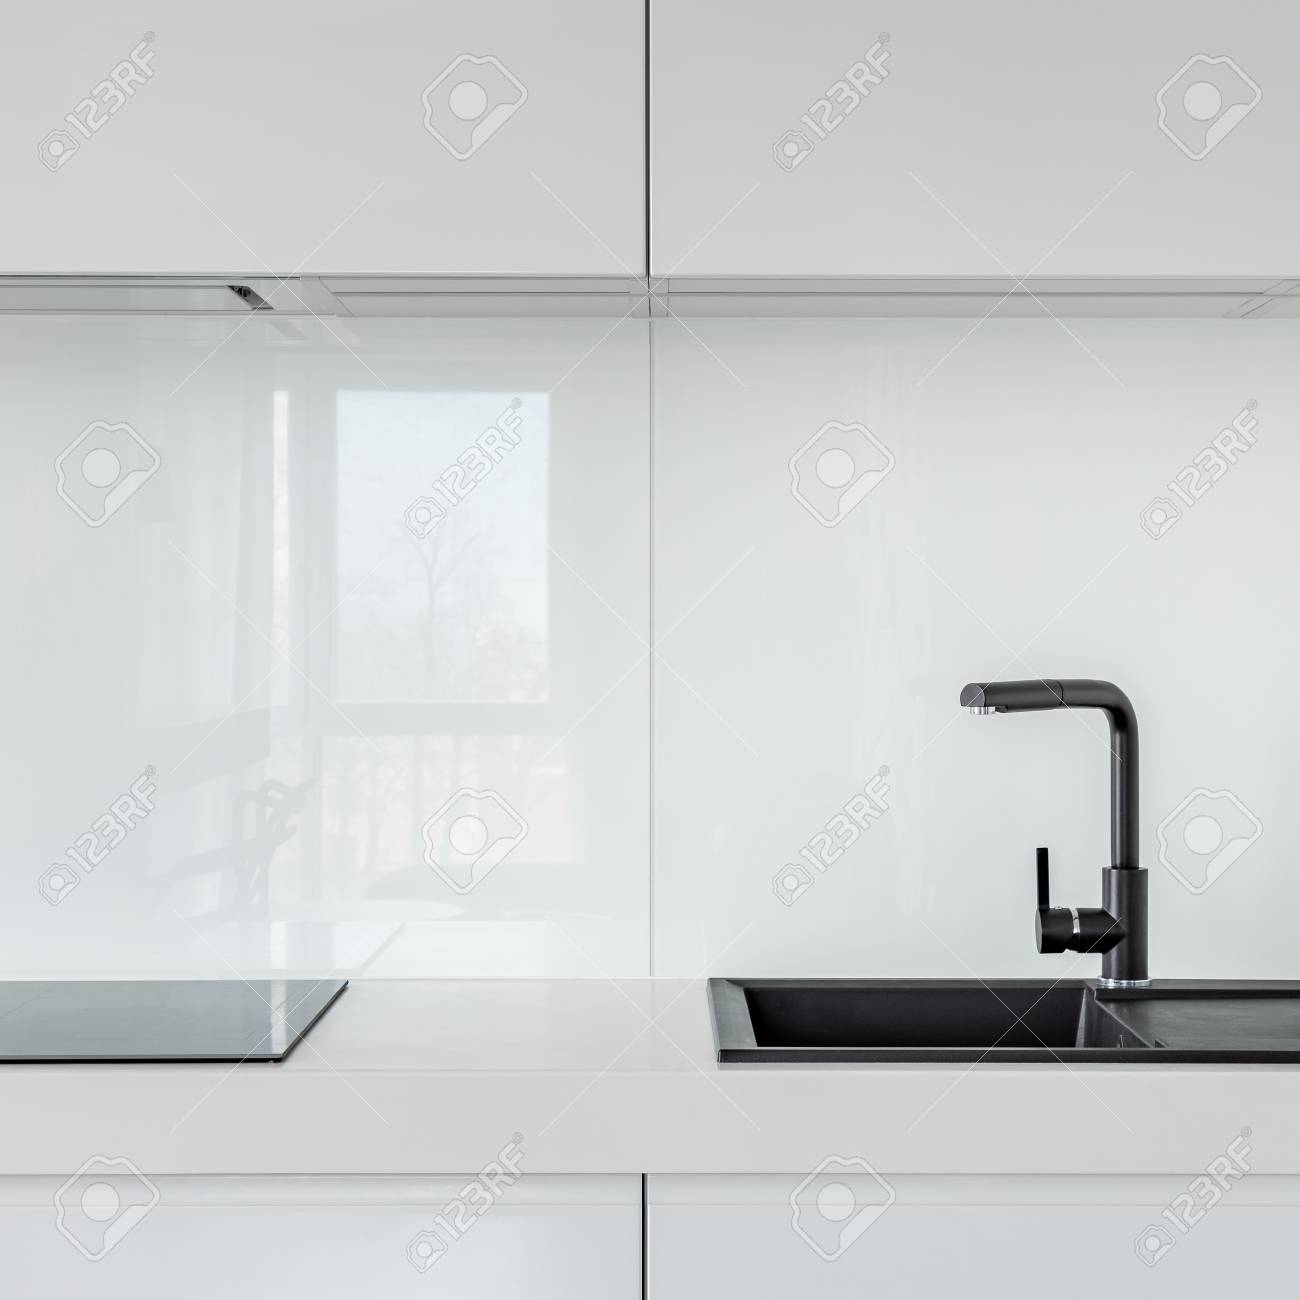 kitchen with white cabinets countertop and black composite kitchen stock photo picture and royalty free image image 107812393